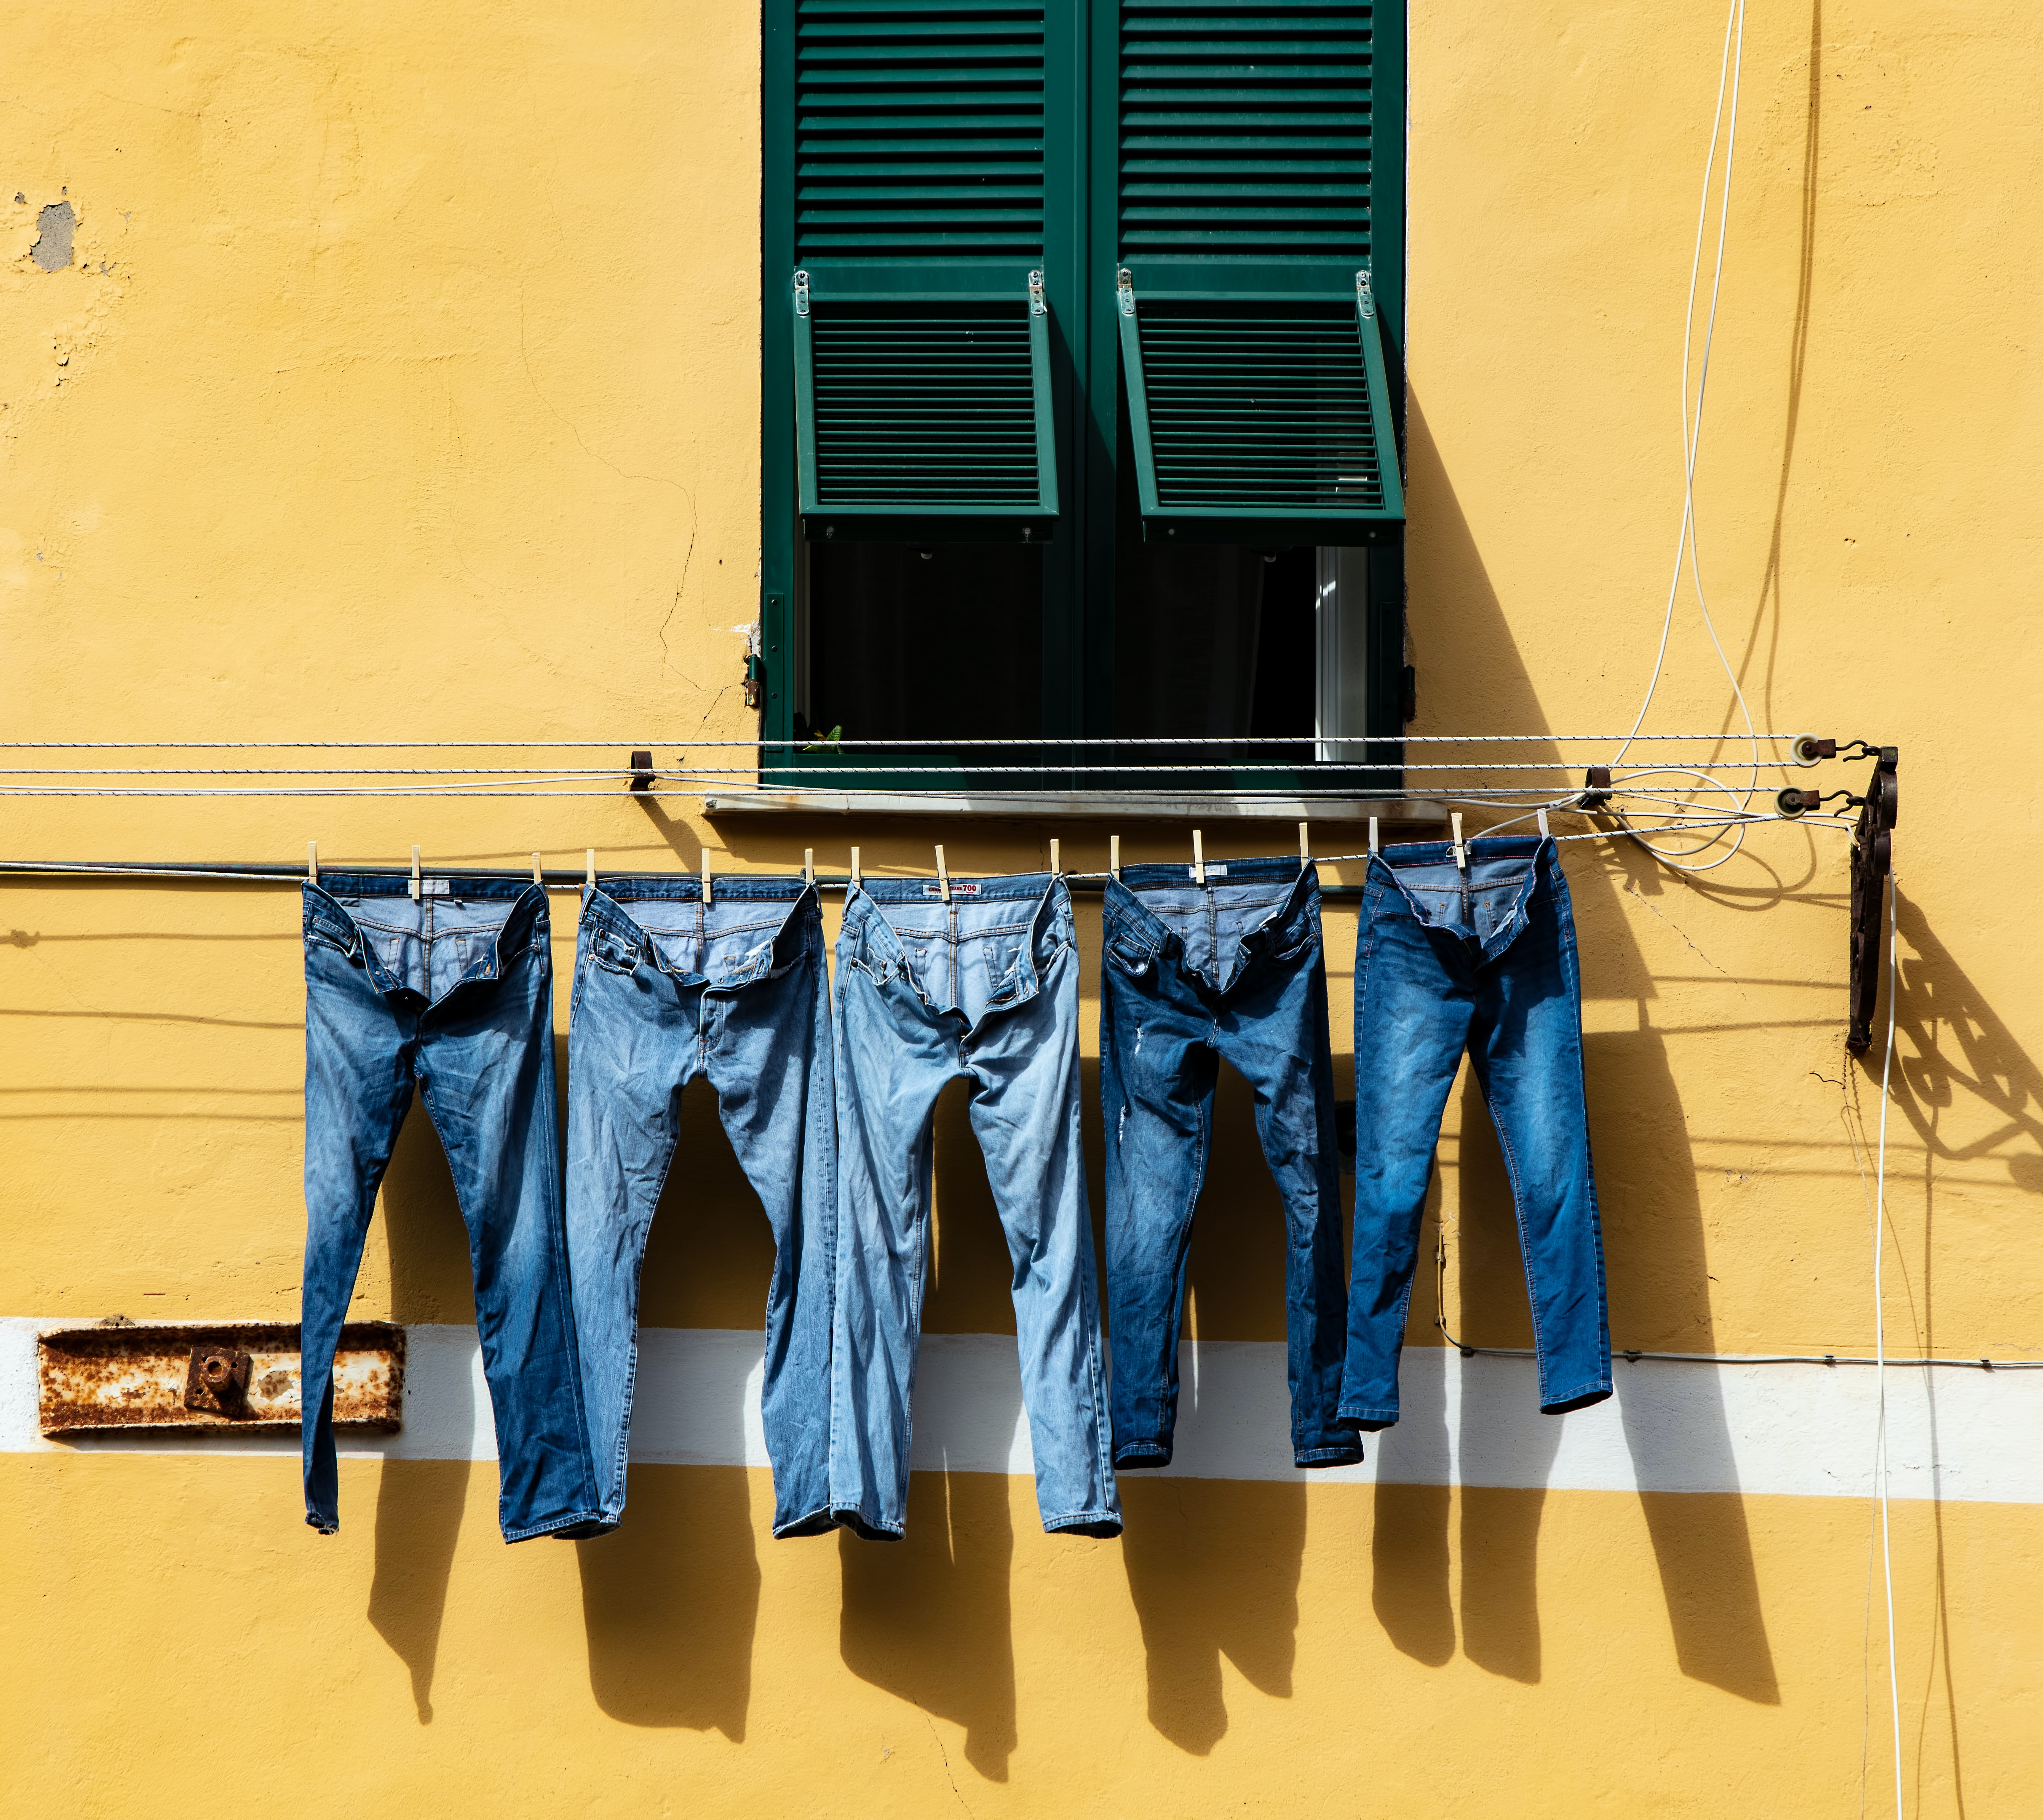 five blue denim jeans hanged on grey cable near window